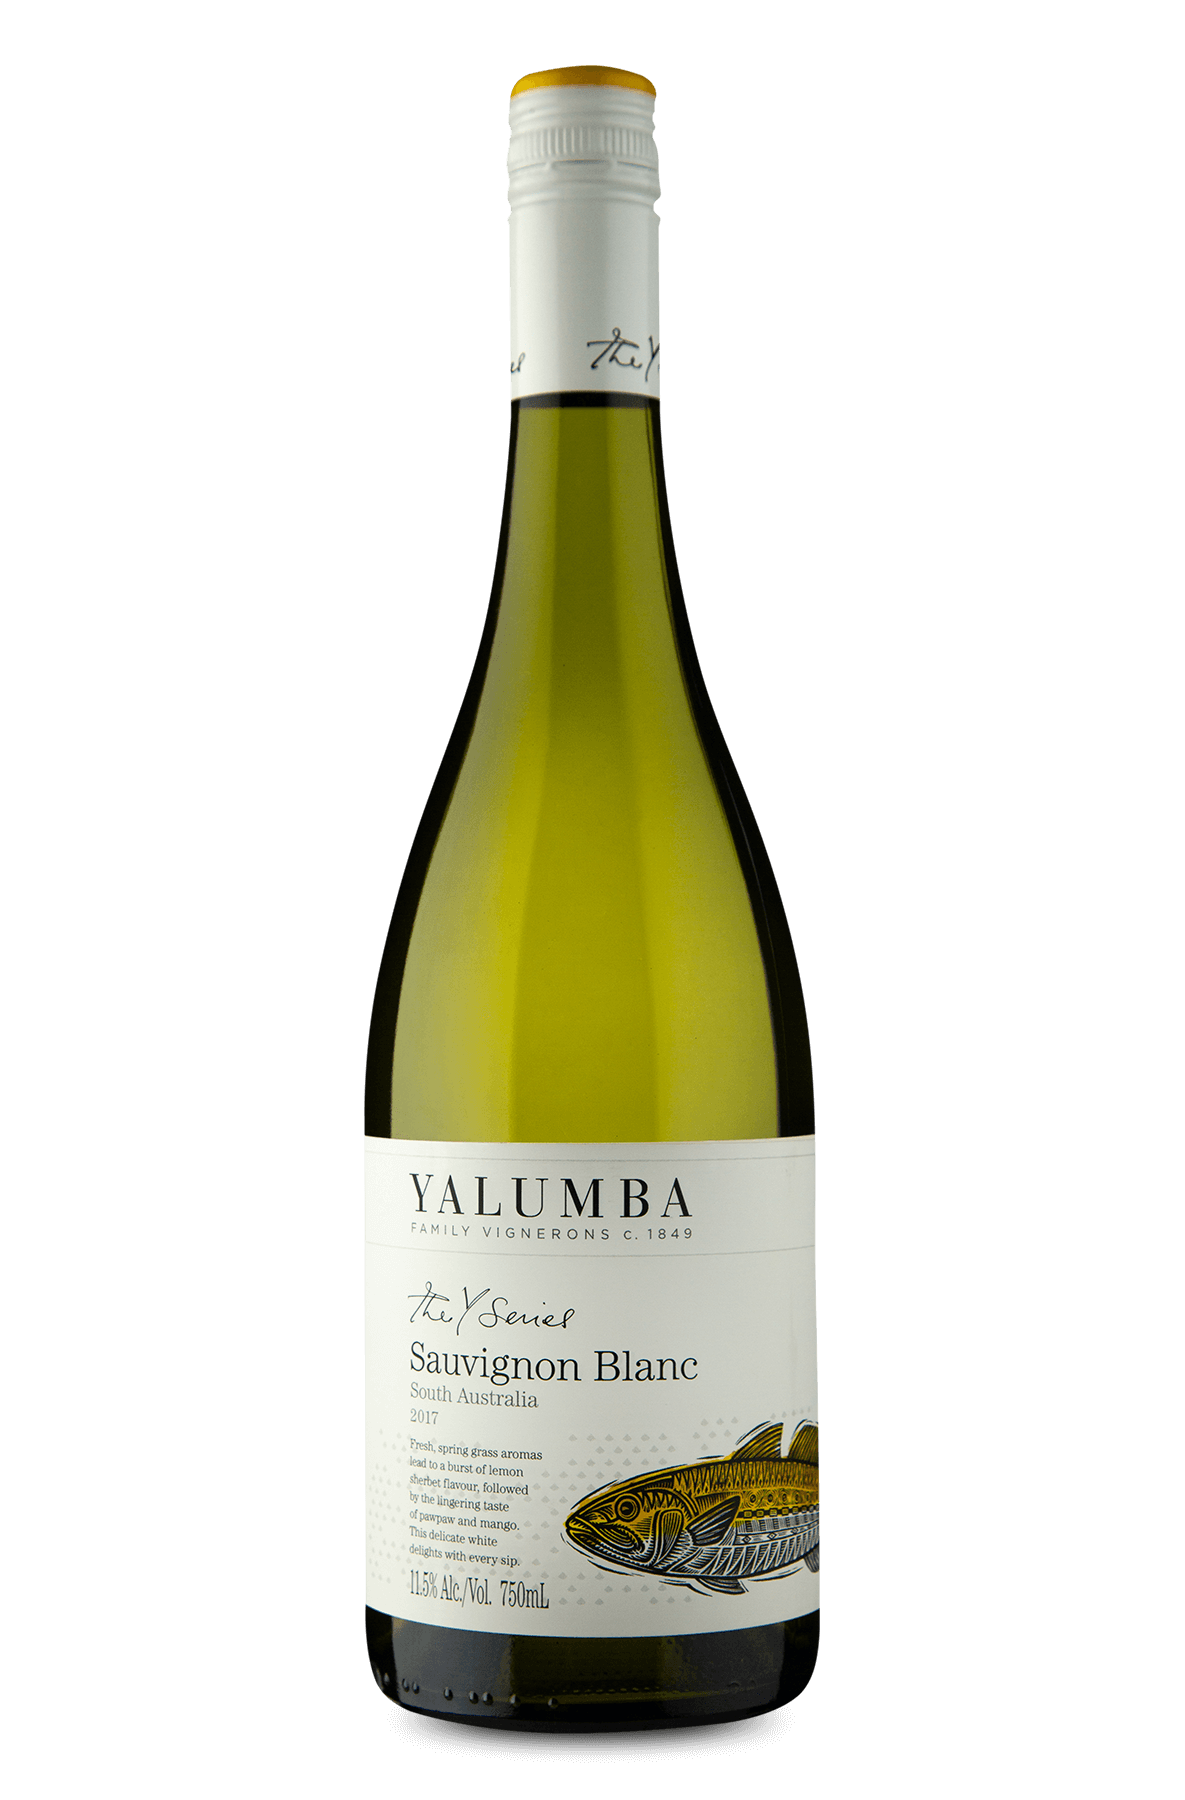 Yalumba The Y Series Sauvignon Blanc 2017